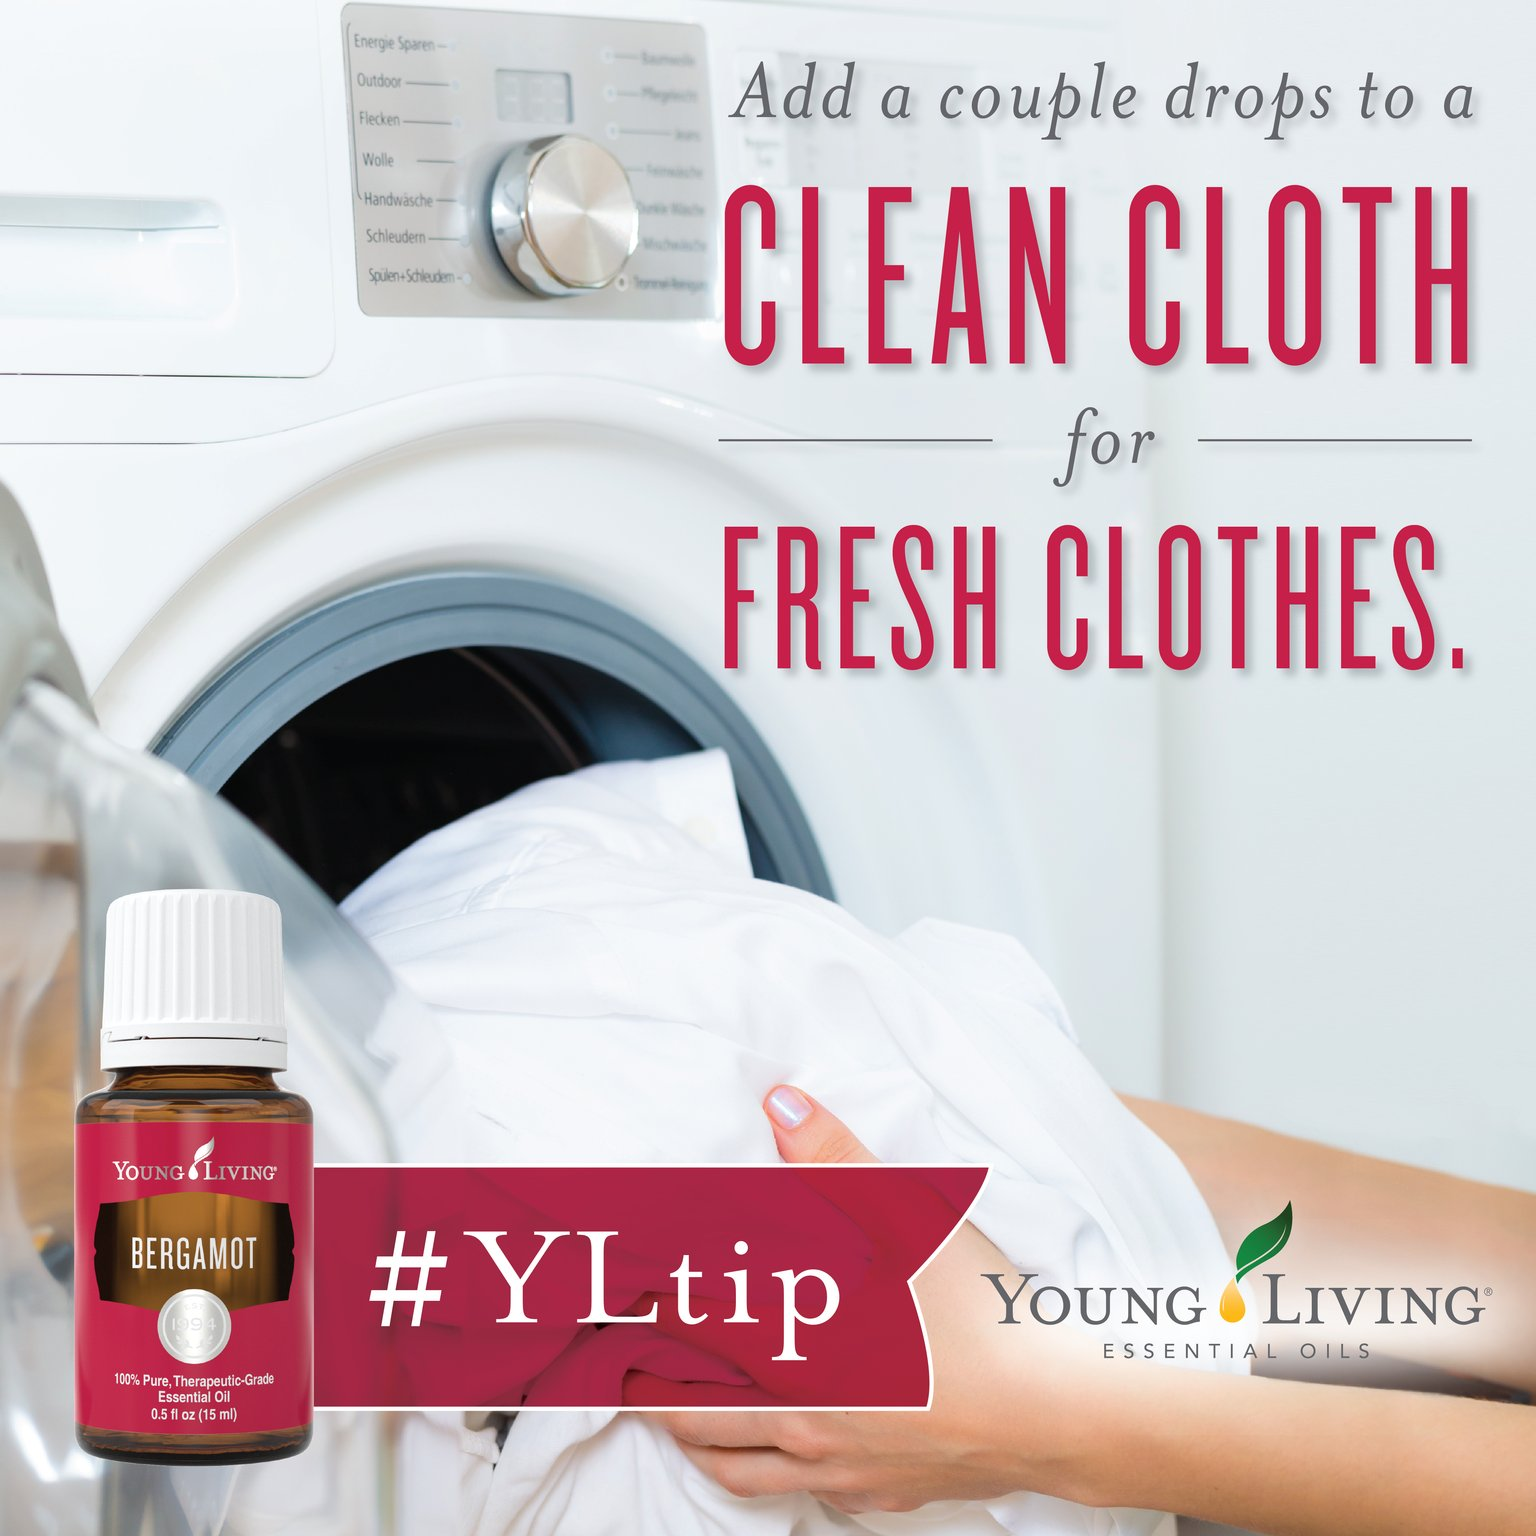 Add a few drops of #essentialoil on a clean washcloth and toss it in the dryer along with your clothes. #YLtip https://t.co/mW5rjH21K6